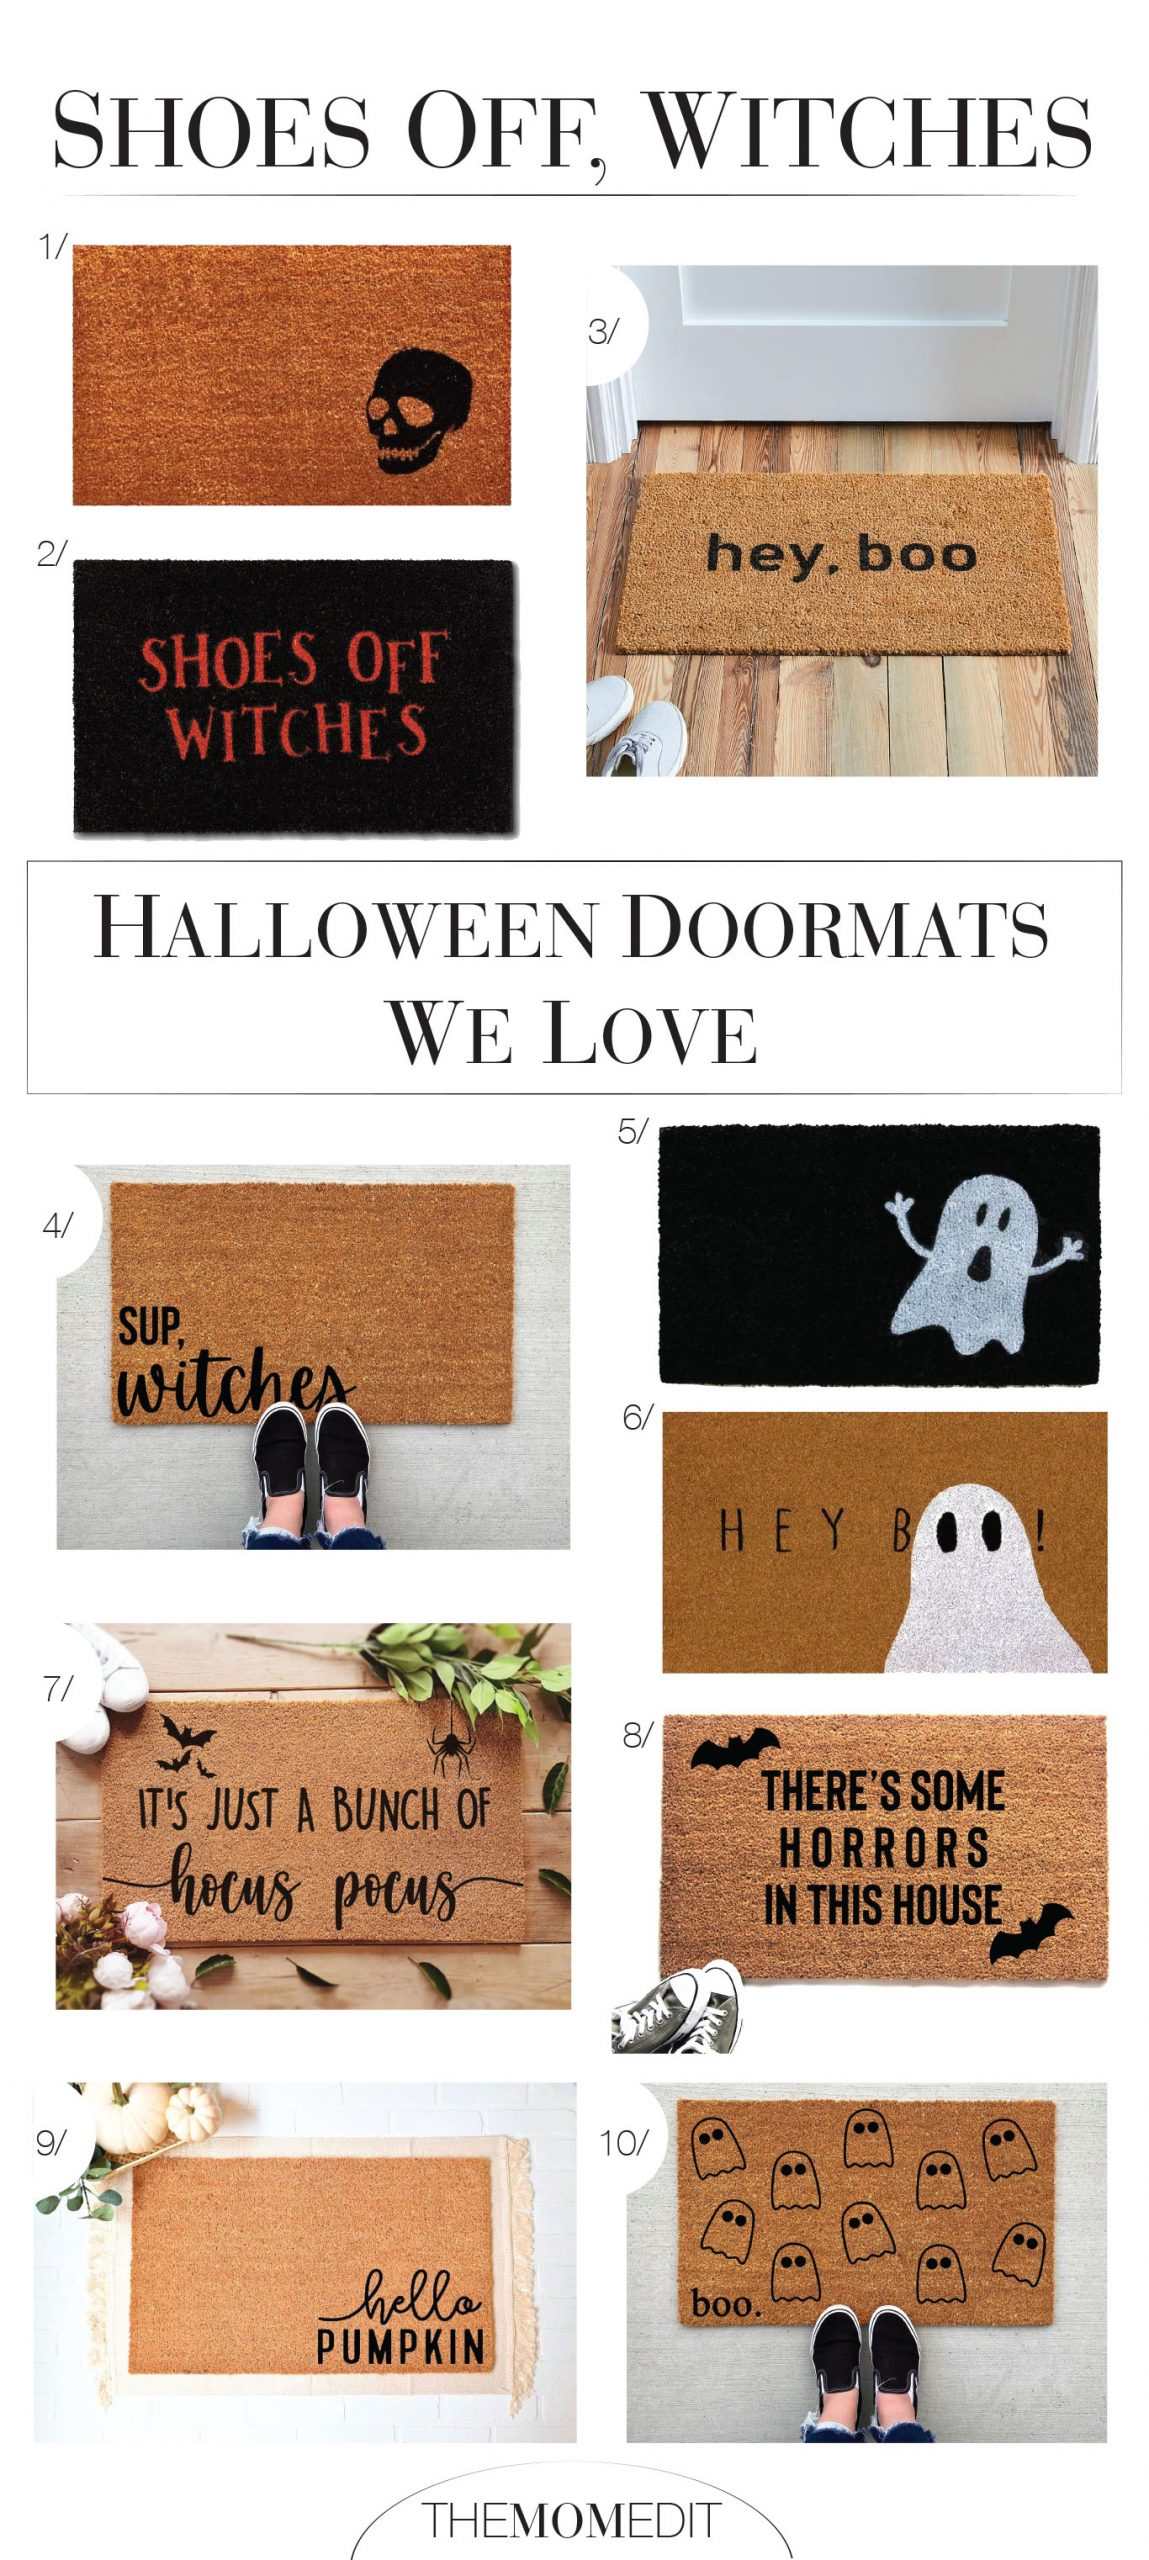 Hey, Boo caught our eye. There's Some Horrors In This House had us ROFL & so did 8 other Halloween doormats. Fun fall decor, inside (Shoes off, witches).